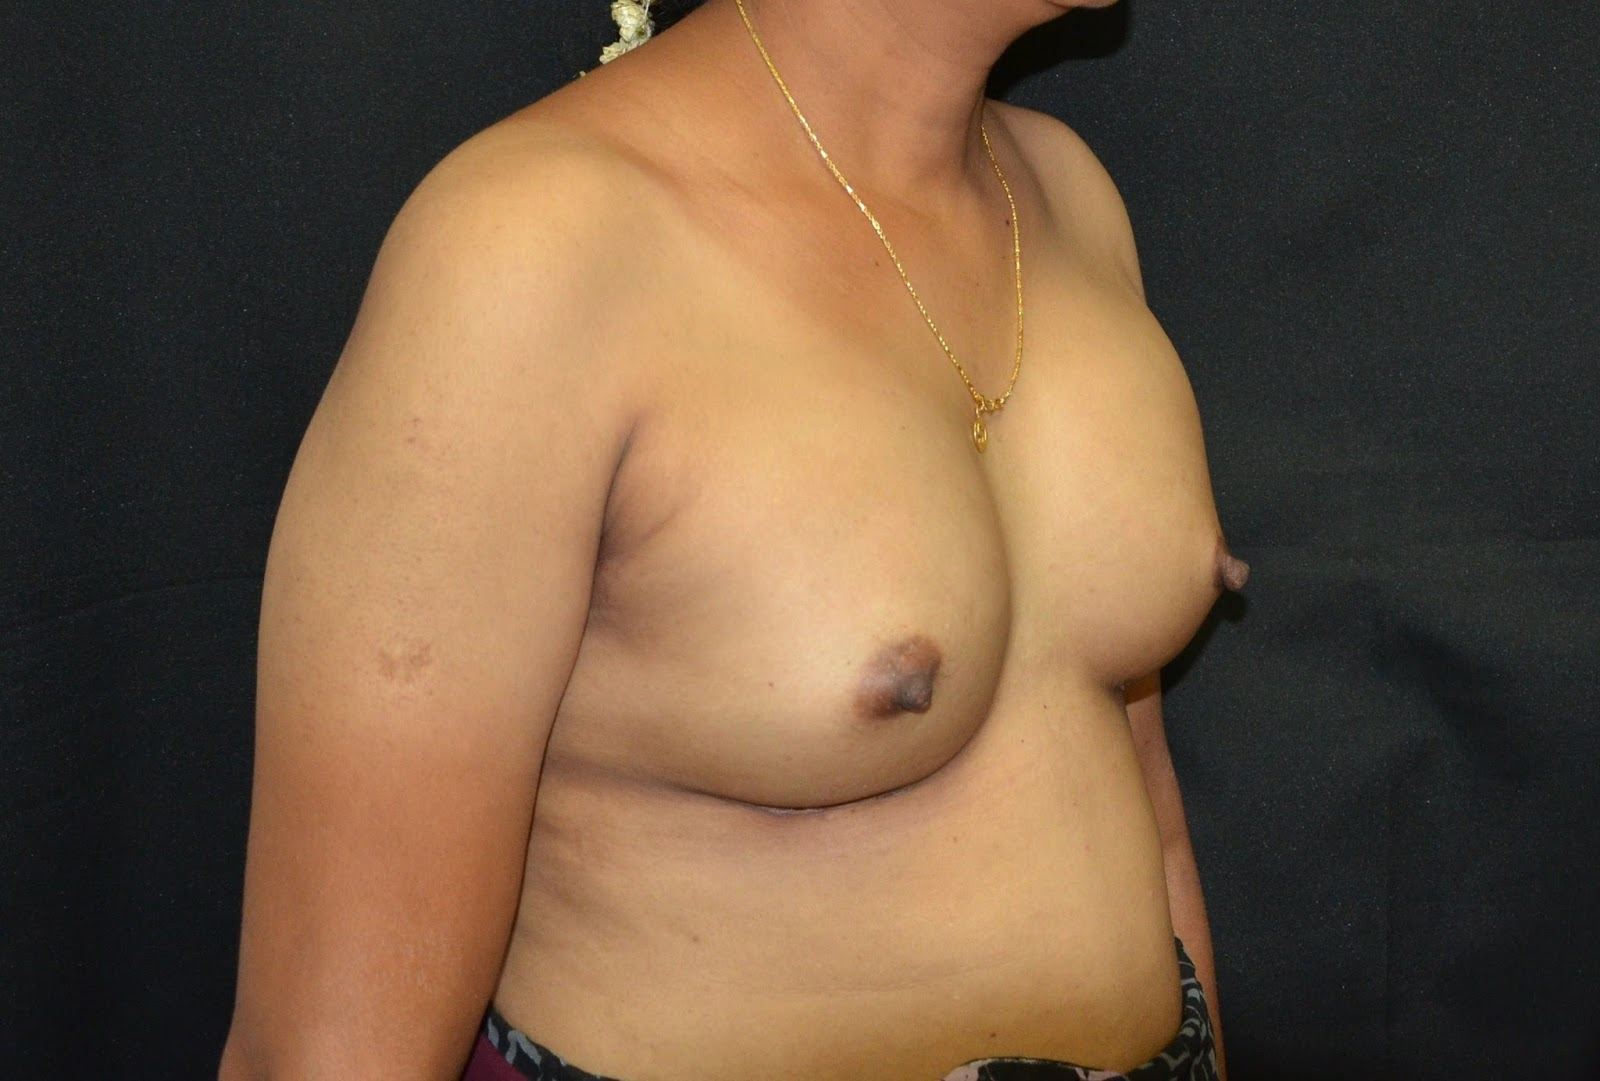 breast implants mentor jpg 1080x810